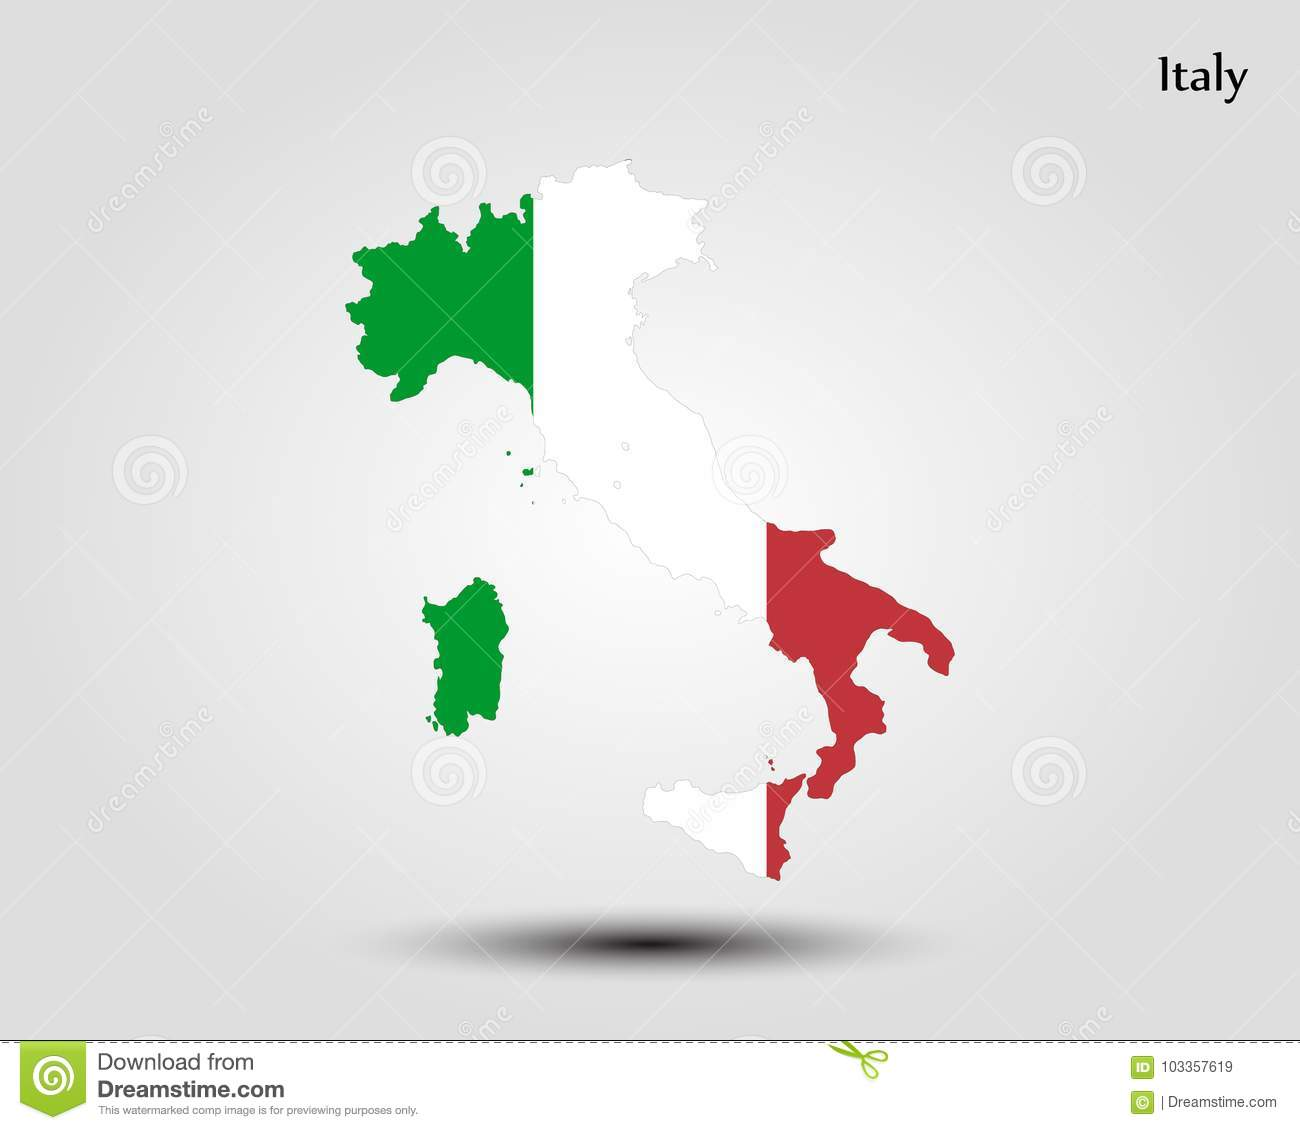 Free Map Of Italy.Map Of Italy Stock Illustration Illustration Of District 103357619